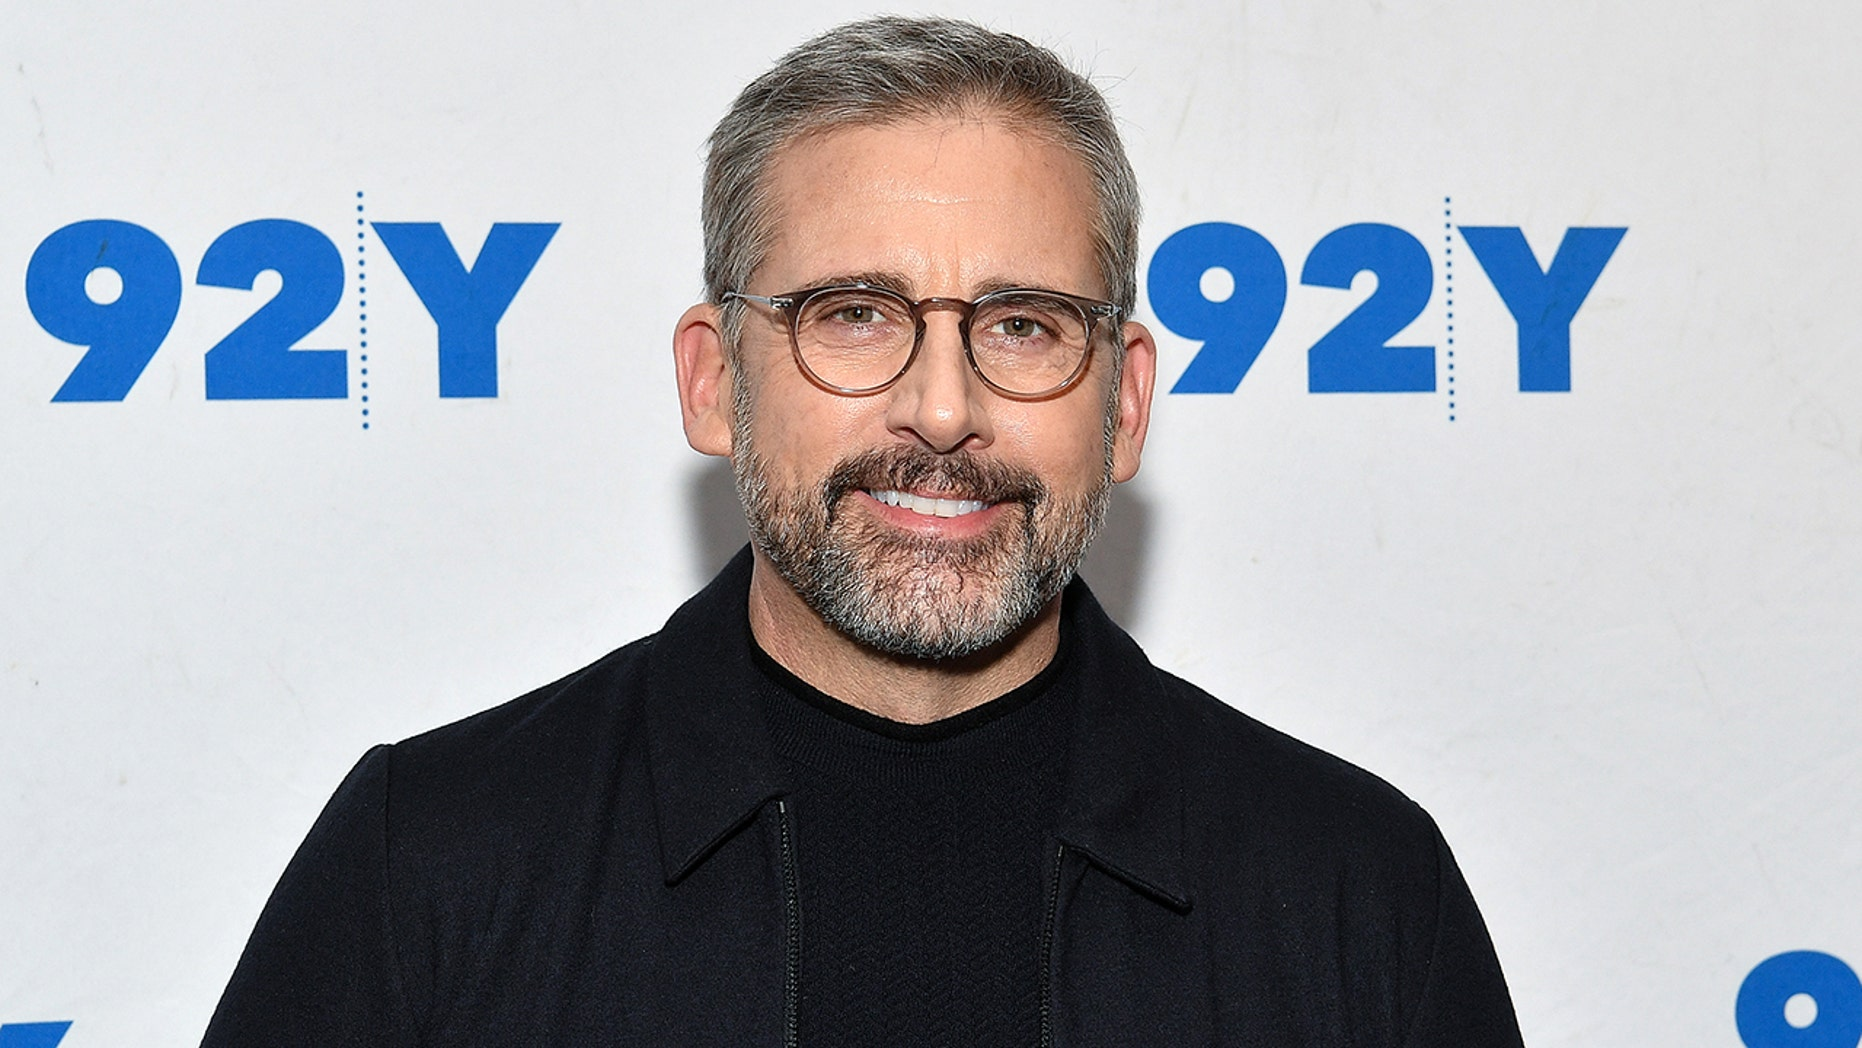 Steve Carell Reteams with 'The Office' Creator for Netflix Series 'Space Force'